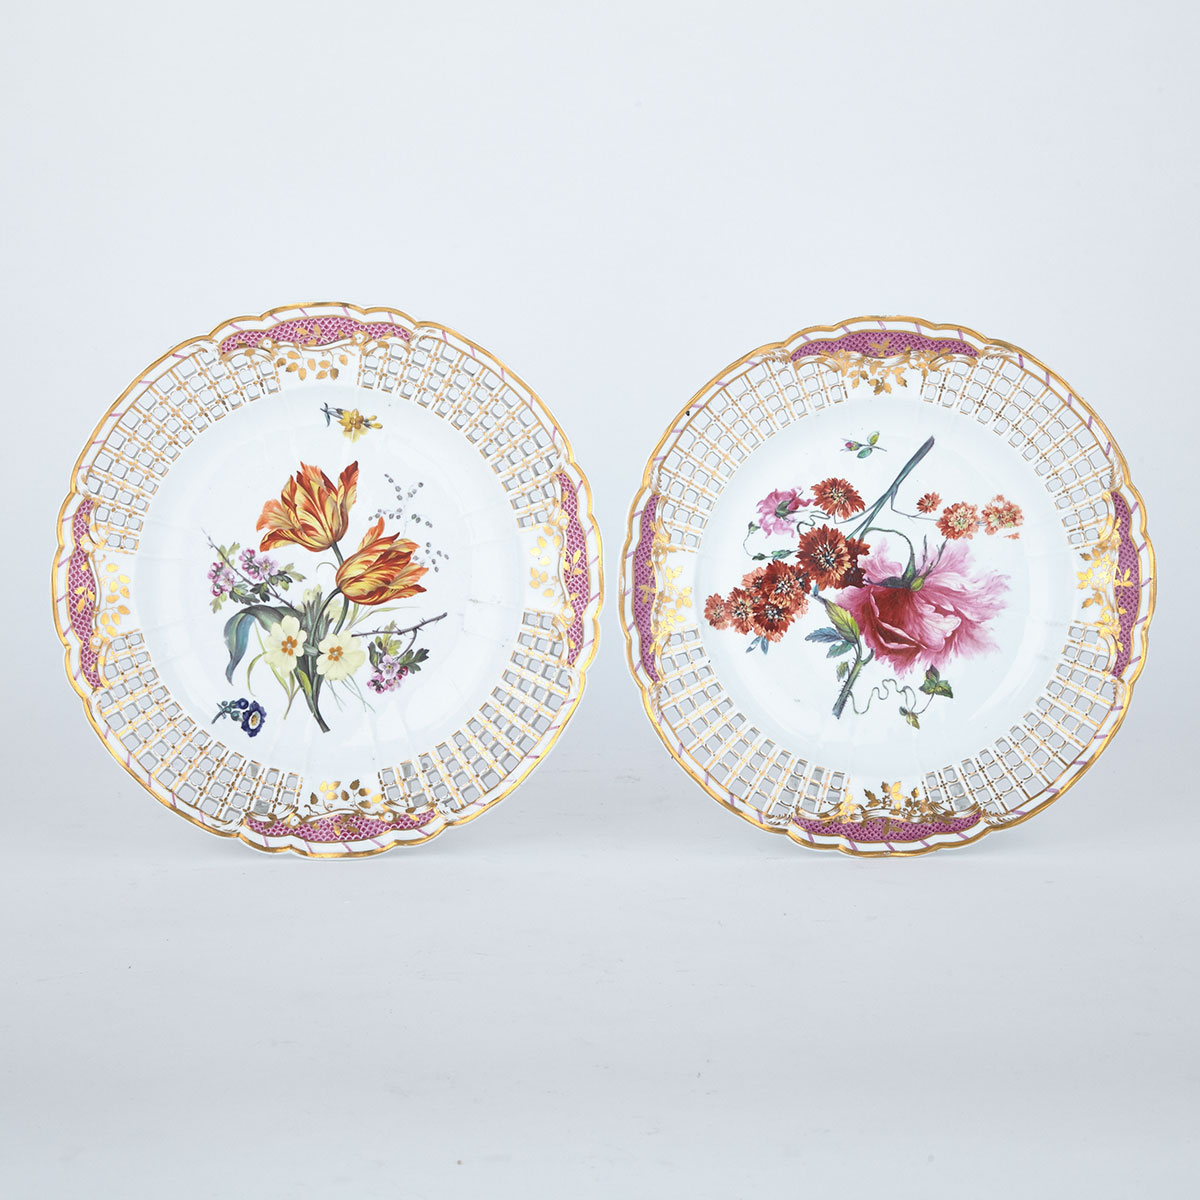 Two Derby Reticulated Plates, c.1825-30